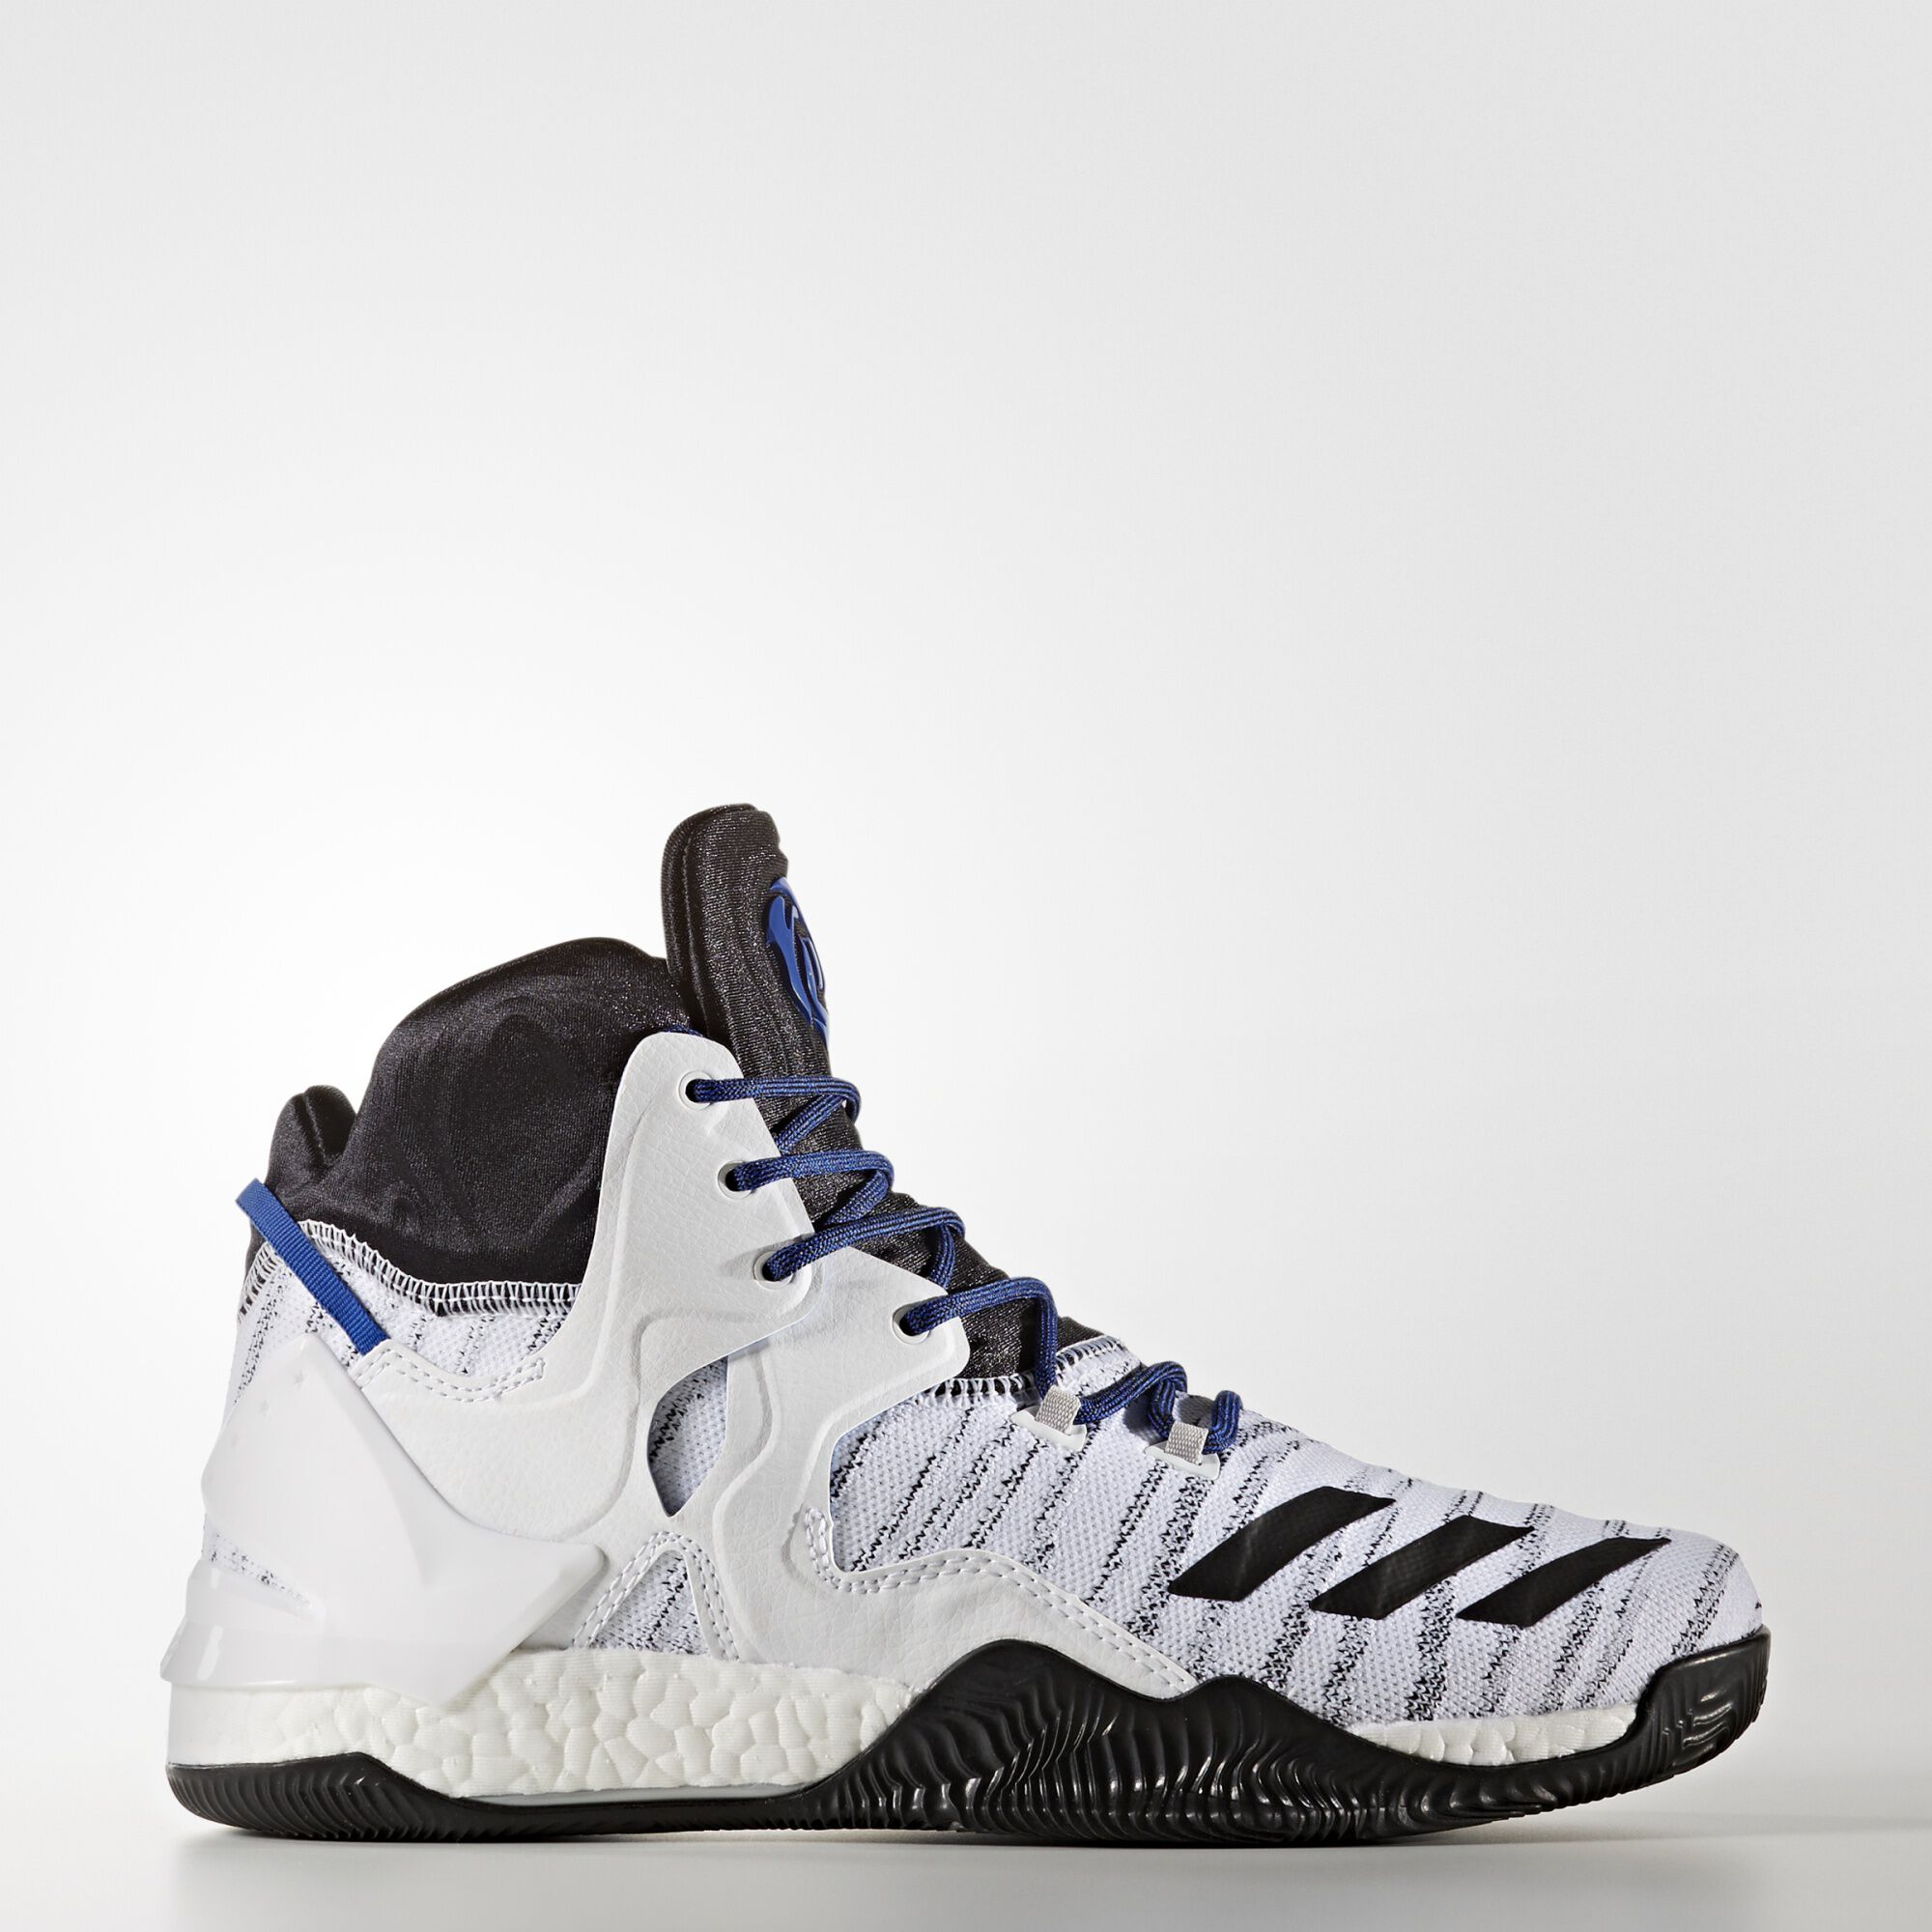 Adidas Shoes Basketball 2017 Blue